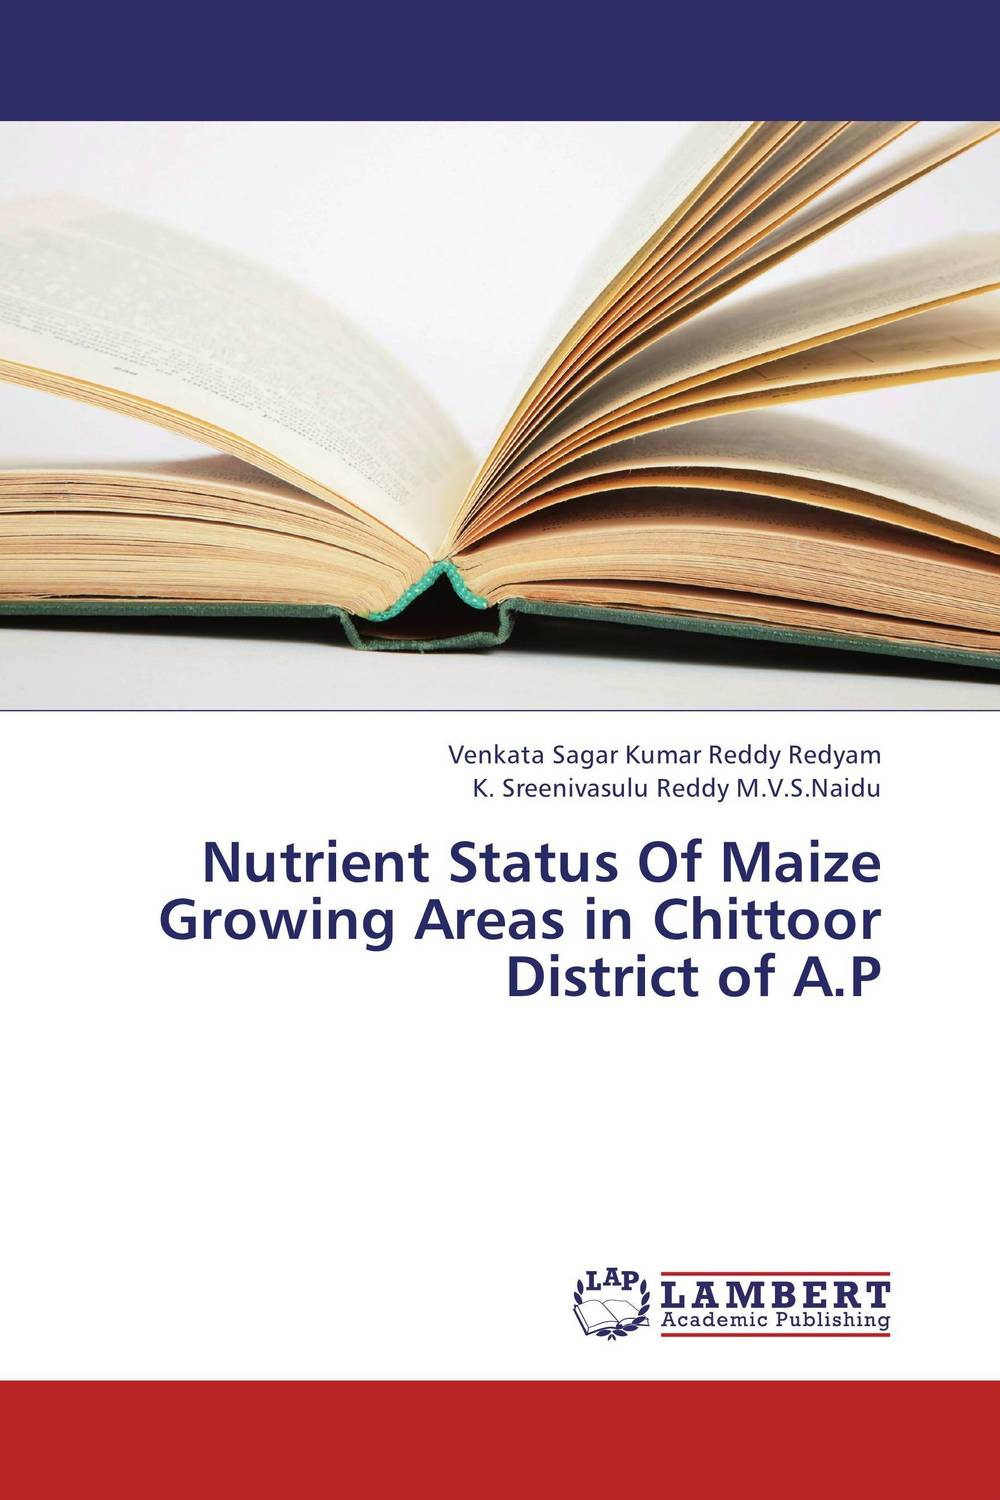 Nutrient Status Of Maize Growing Areas in Chittoor District of A.P status of soils and water reservoirs near industrial areas of baroda